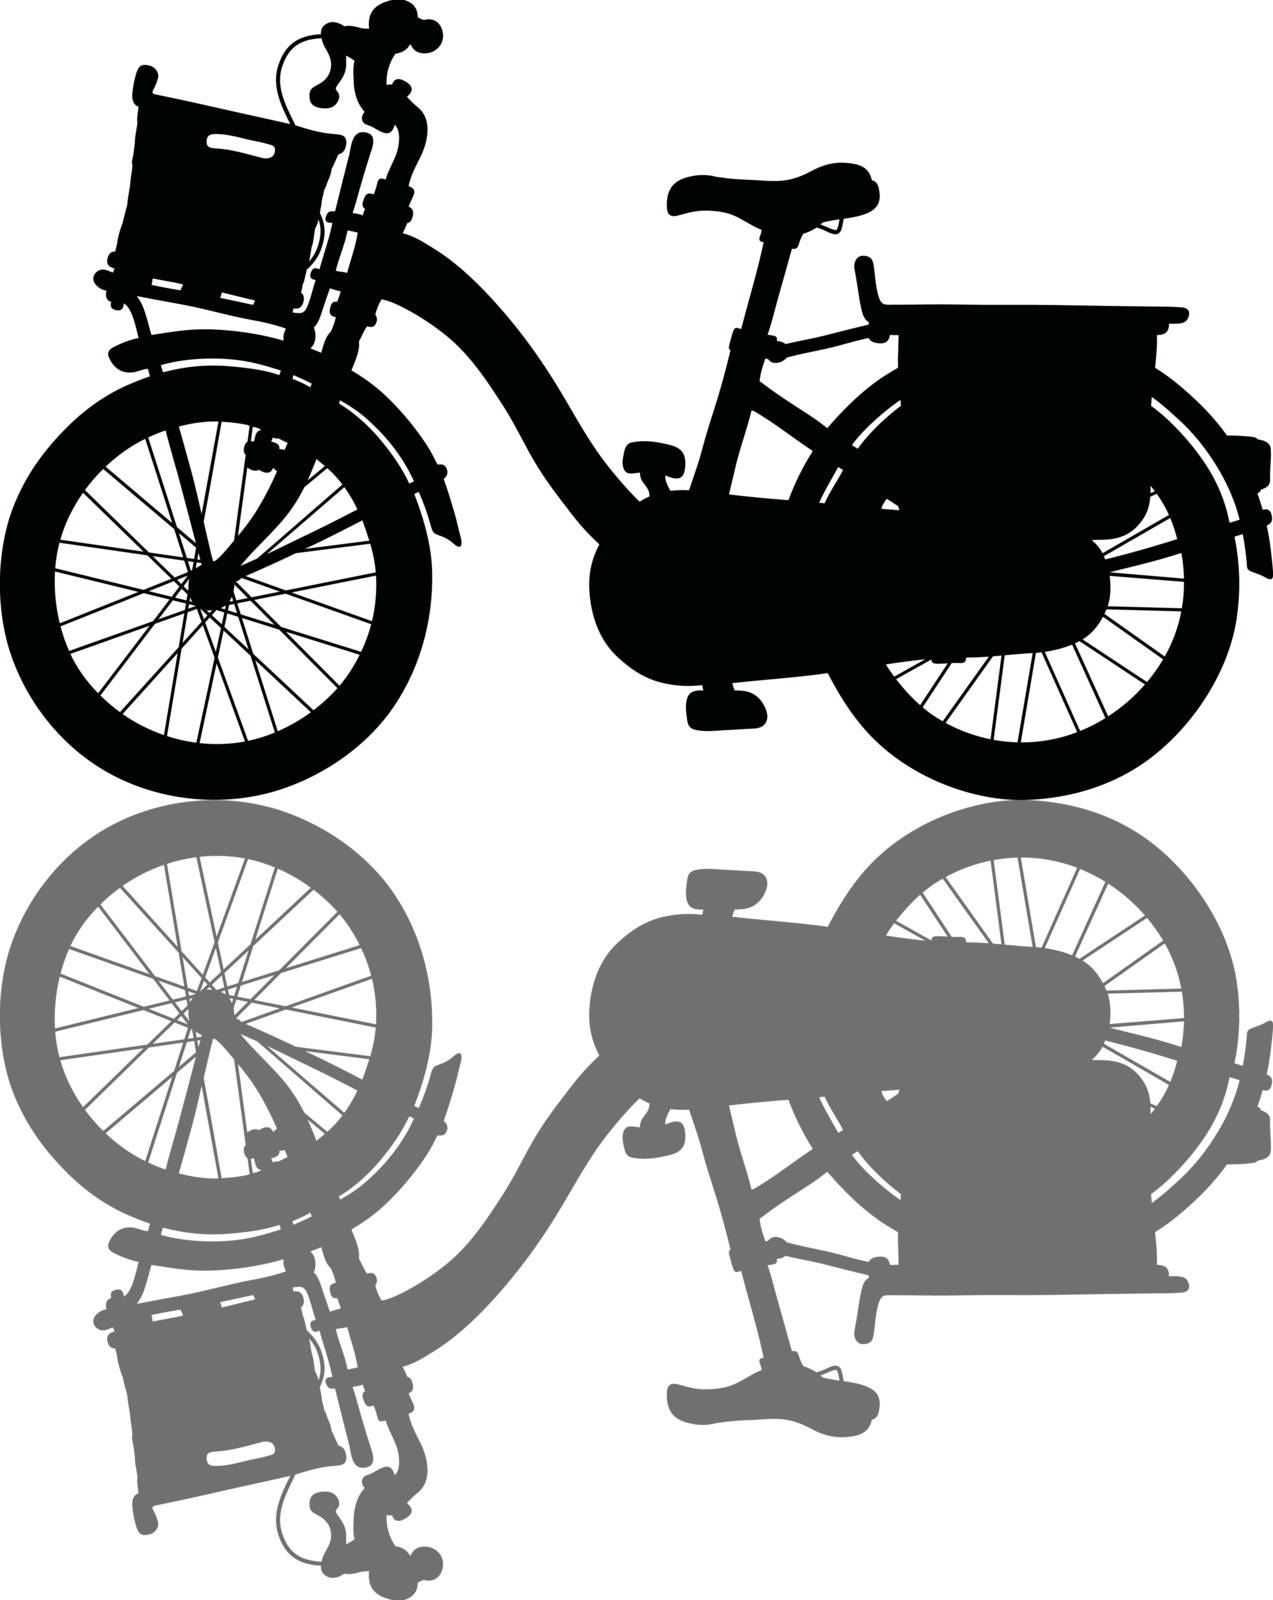 The black silhouette of a classical bicycle